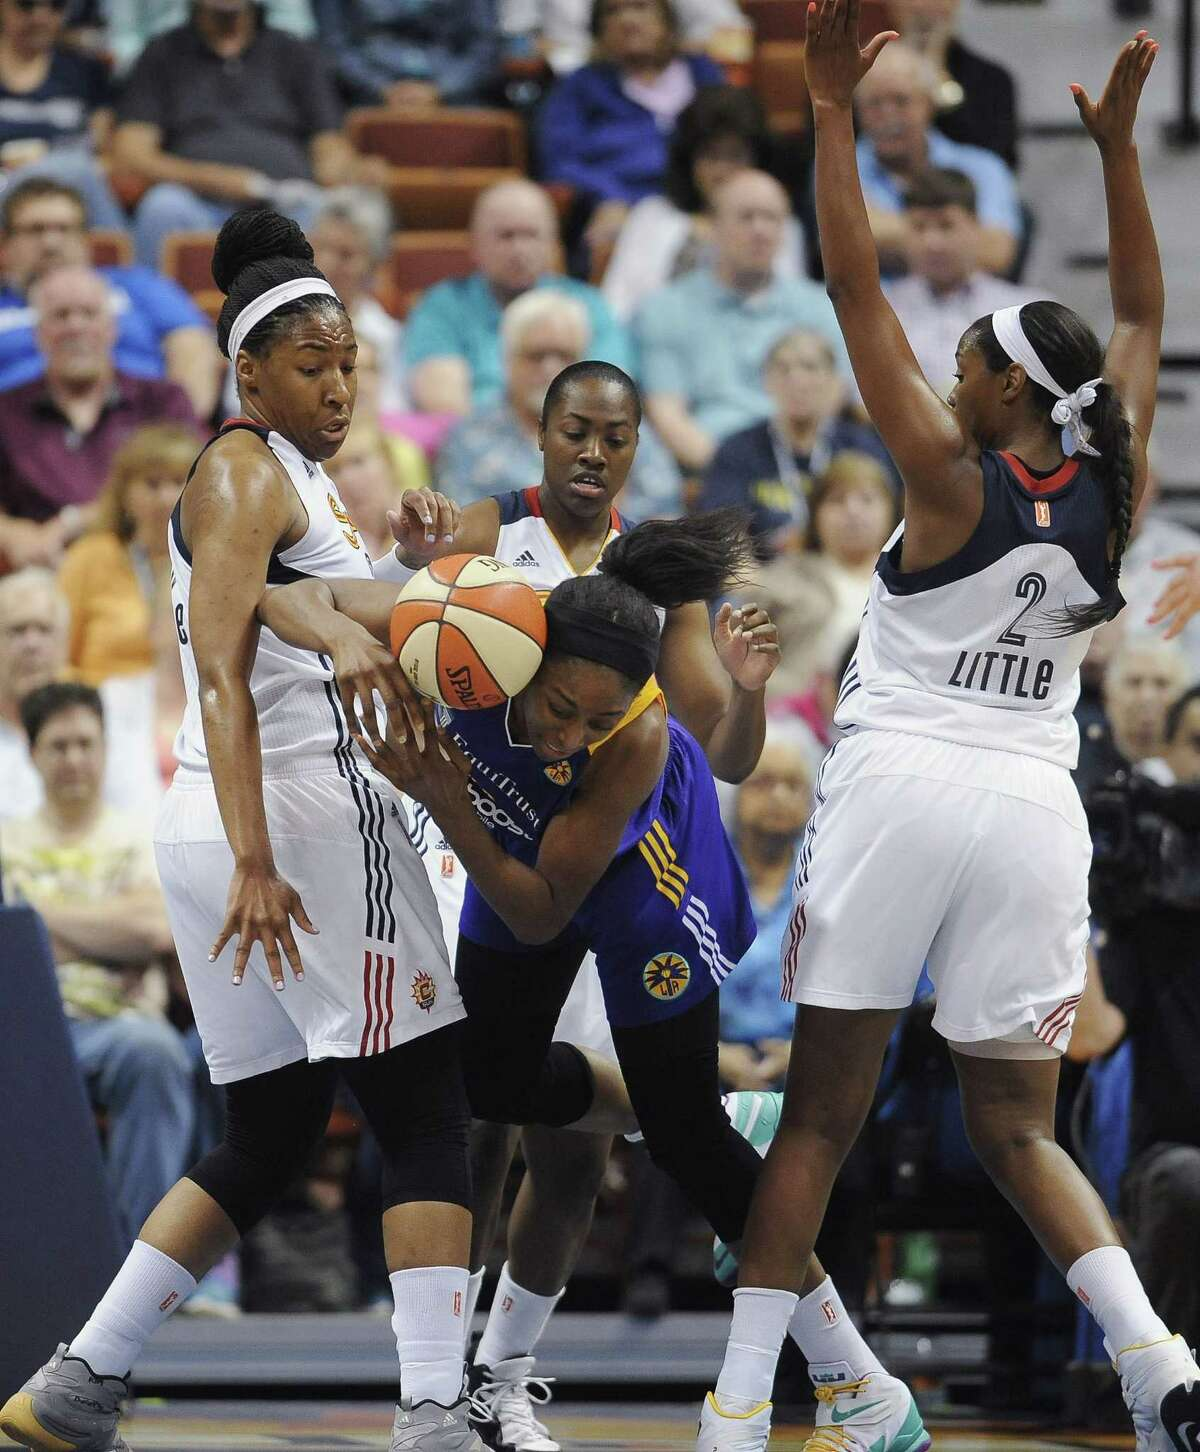 The Los Angeles Sparks' Nneka Ogwumike, center, stumbles under pressure from the Connecticut Sun's Kelsey Bone, left, and Camille Little, right, during a recent game.